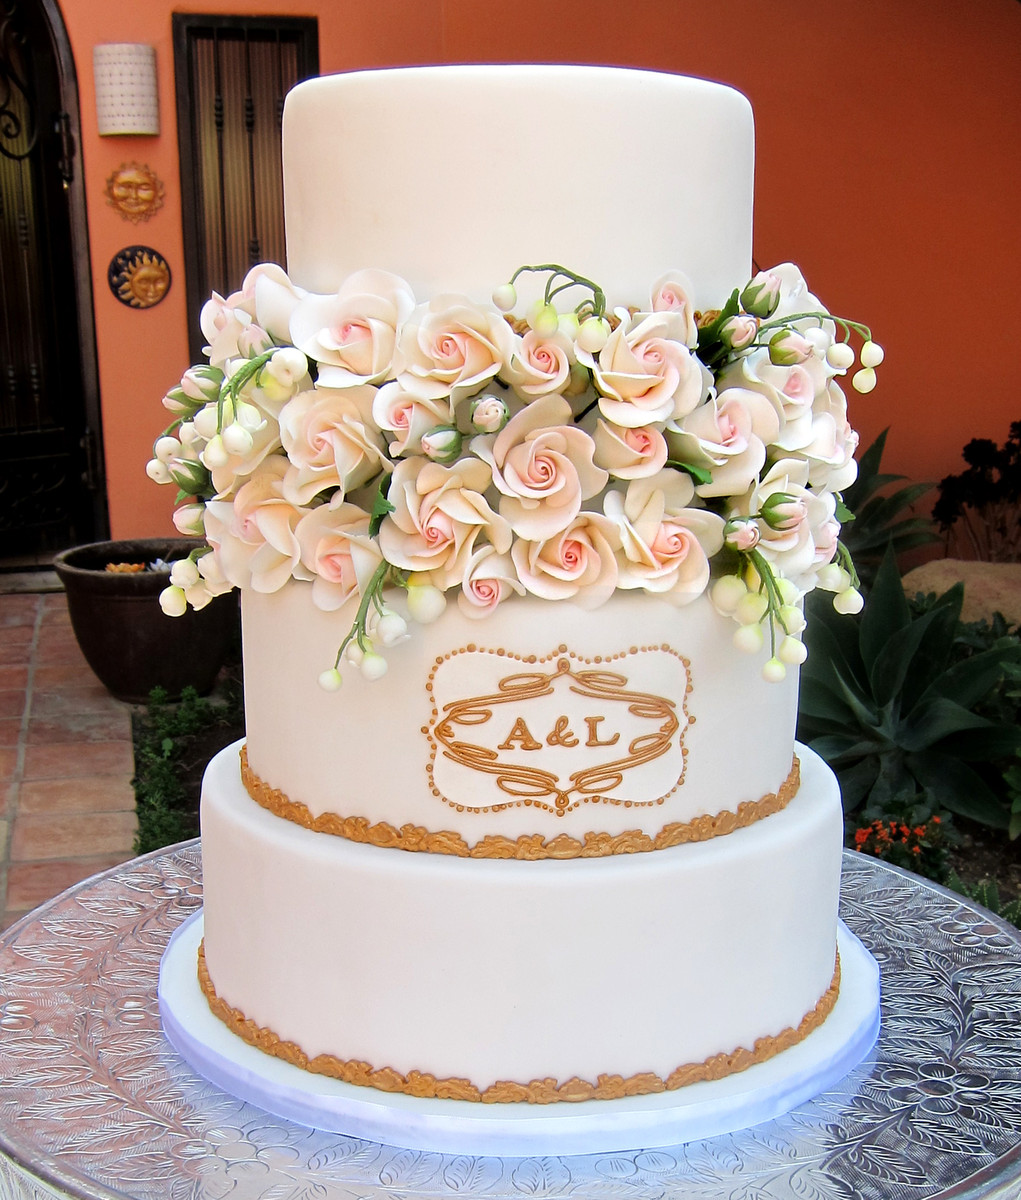 los angeles wedding cakes delicious arts wedding cake los angeles ca weddingwire 16941